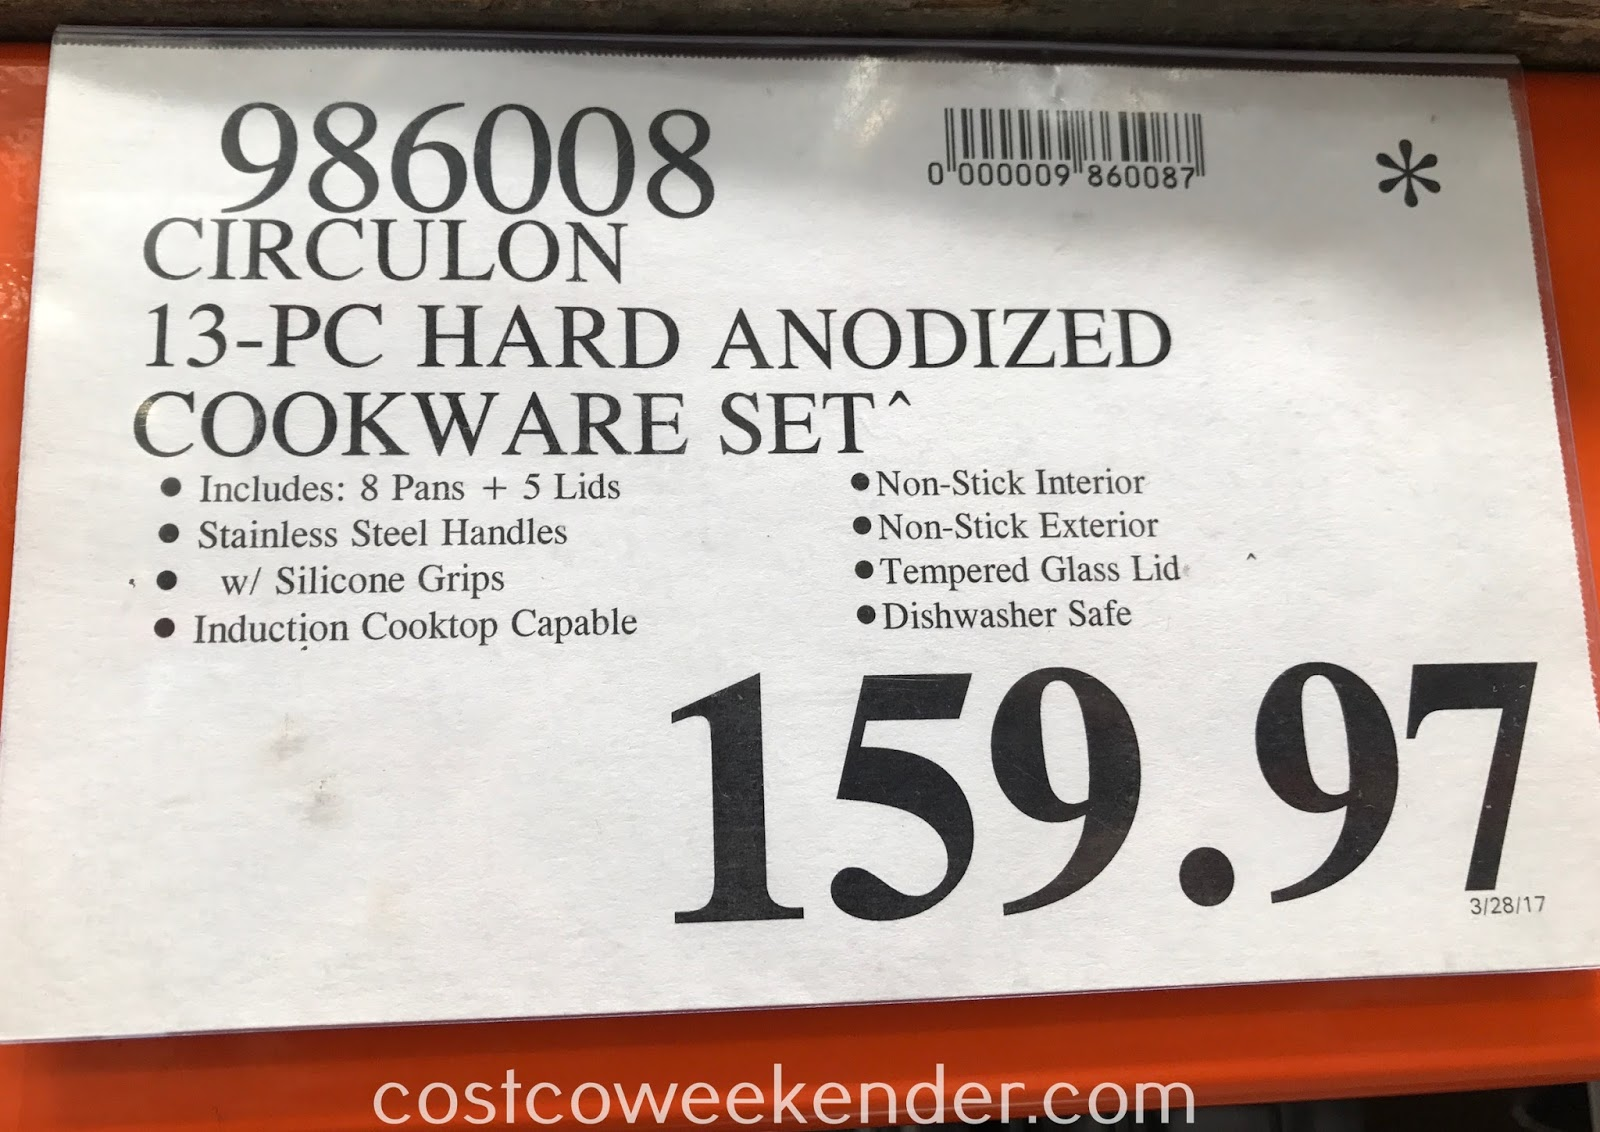 Deal for the Circulon 13 piece Hard-Anodized Cookware Set at Costco